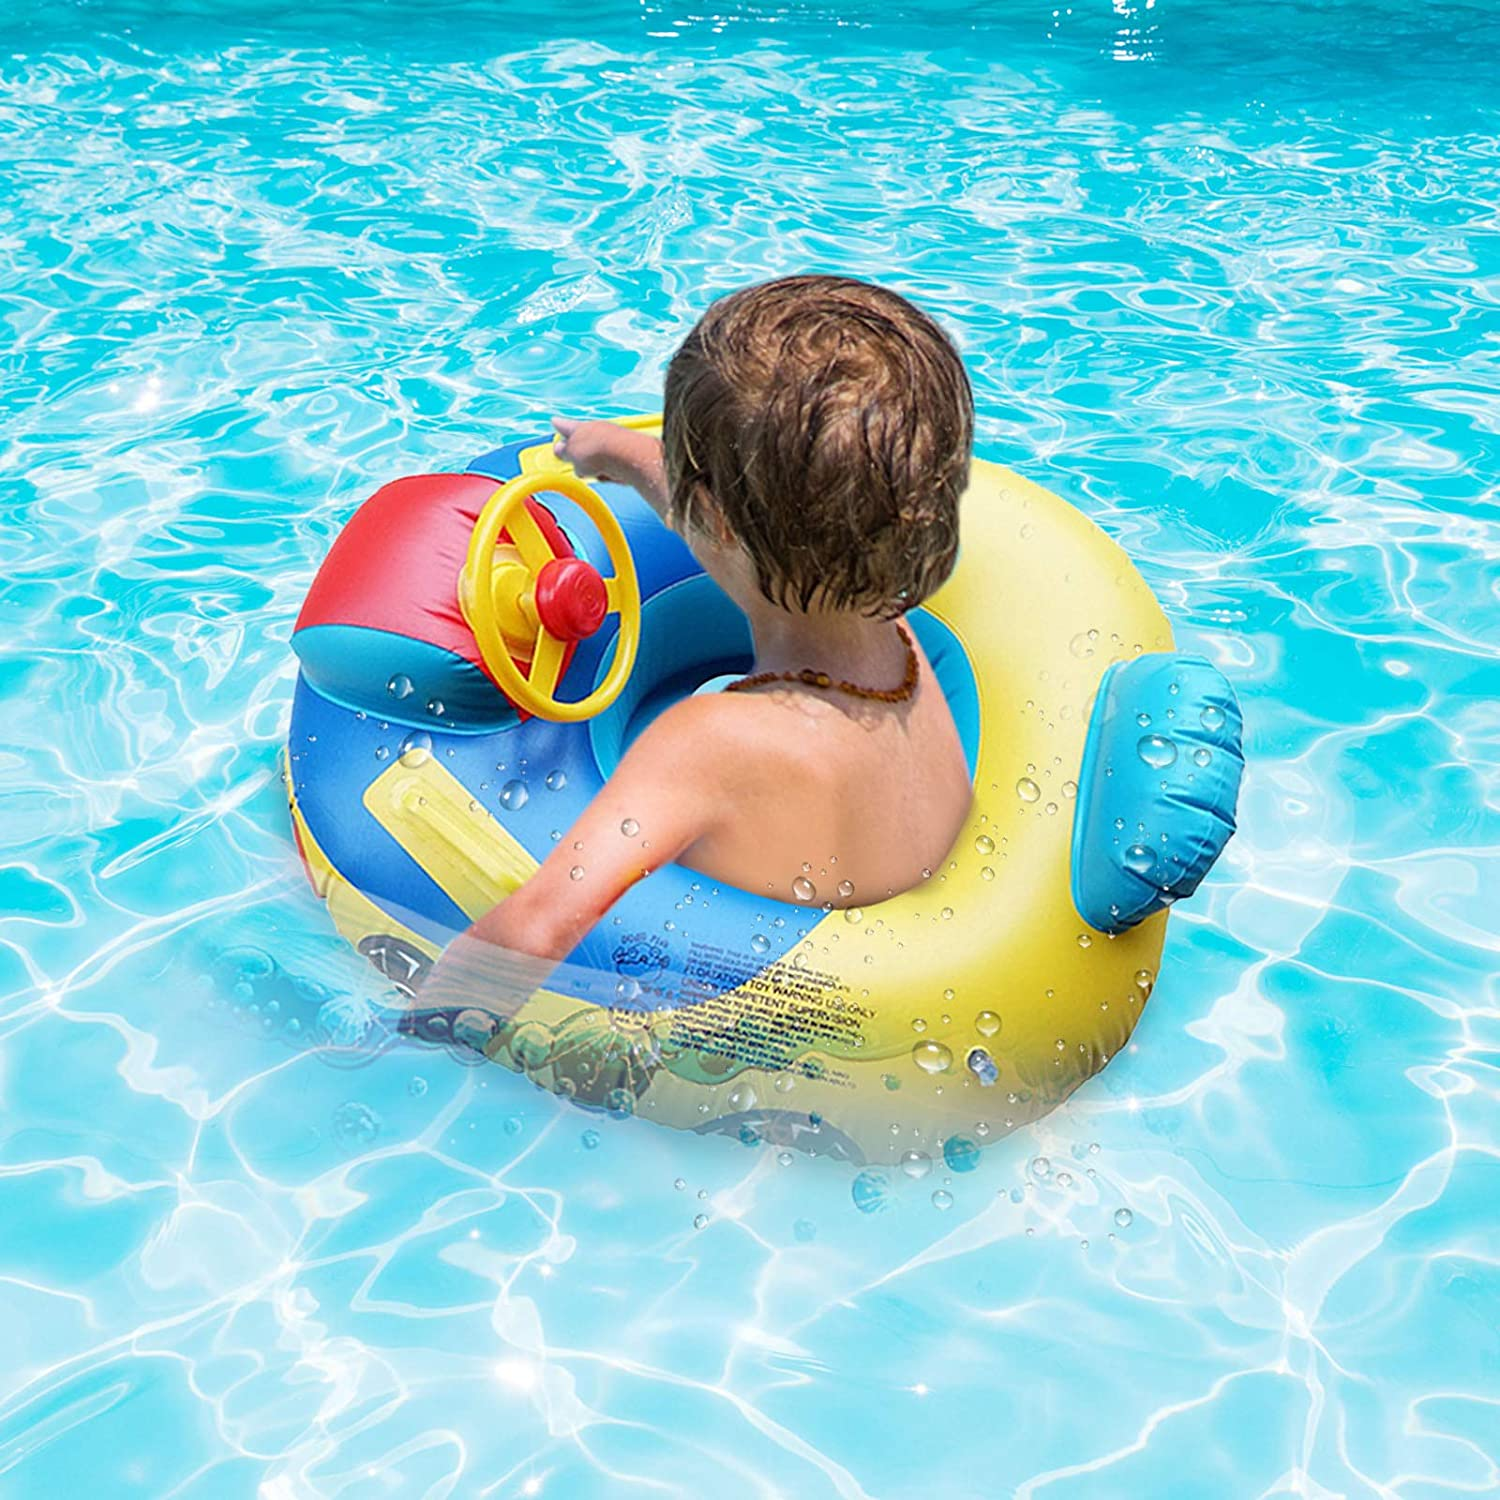 Jialili Toddler Pool Floats 2021 Jacksonville Mall Water Kids Upgrade Today's only Inflatable